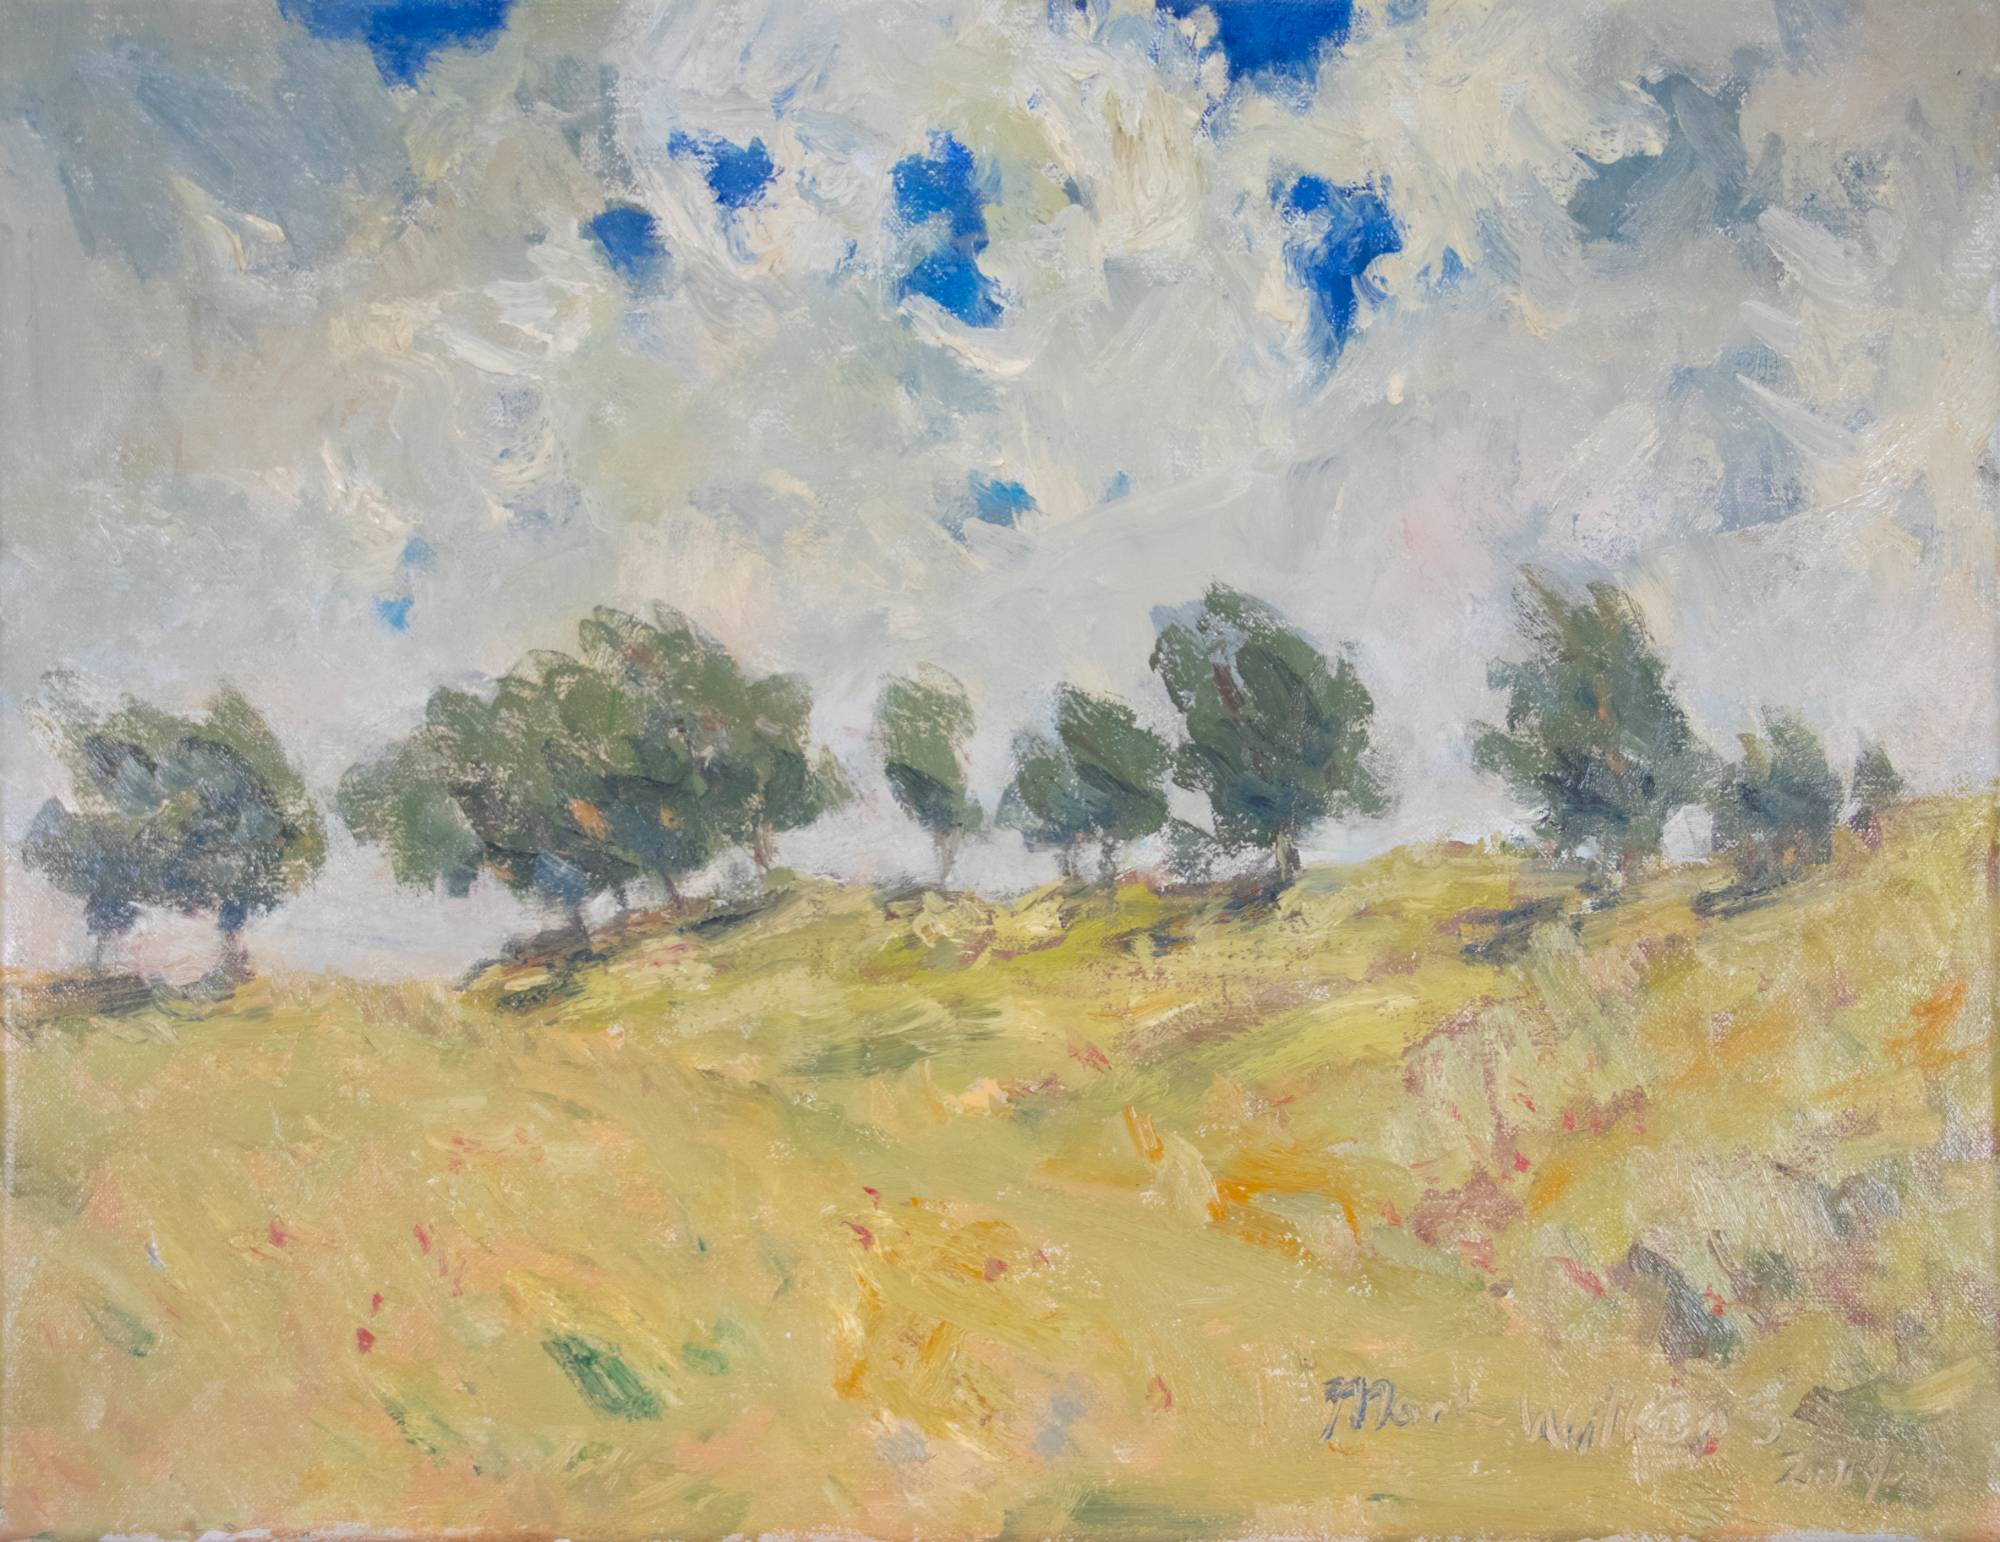 An art piece that features trees on grassy hills and clouds in the sky.